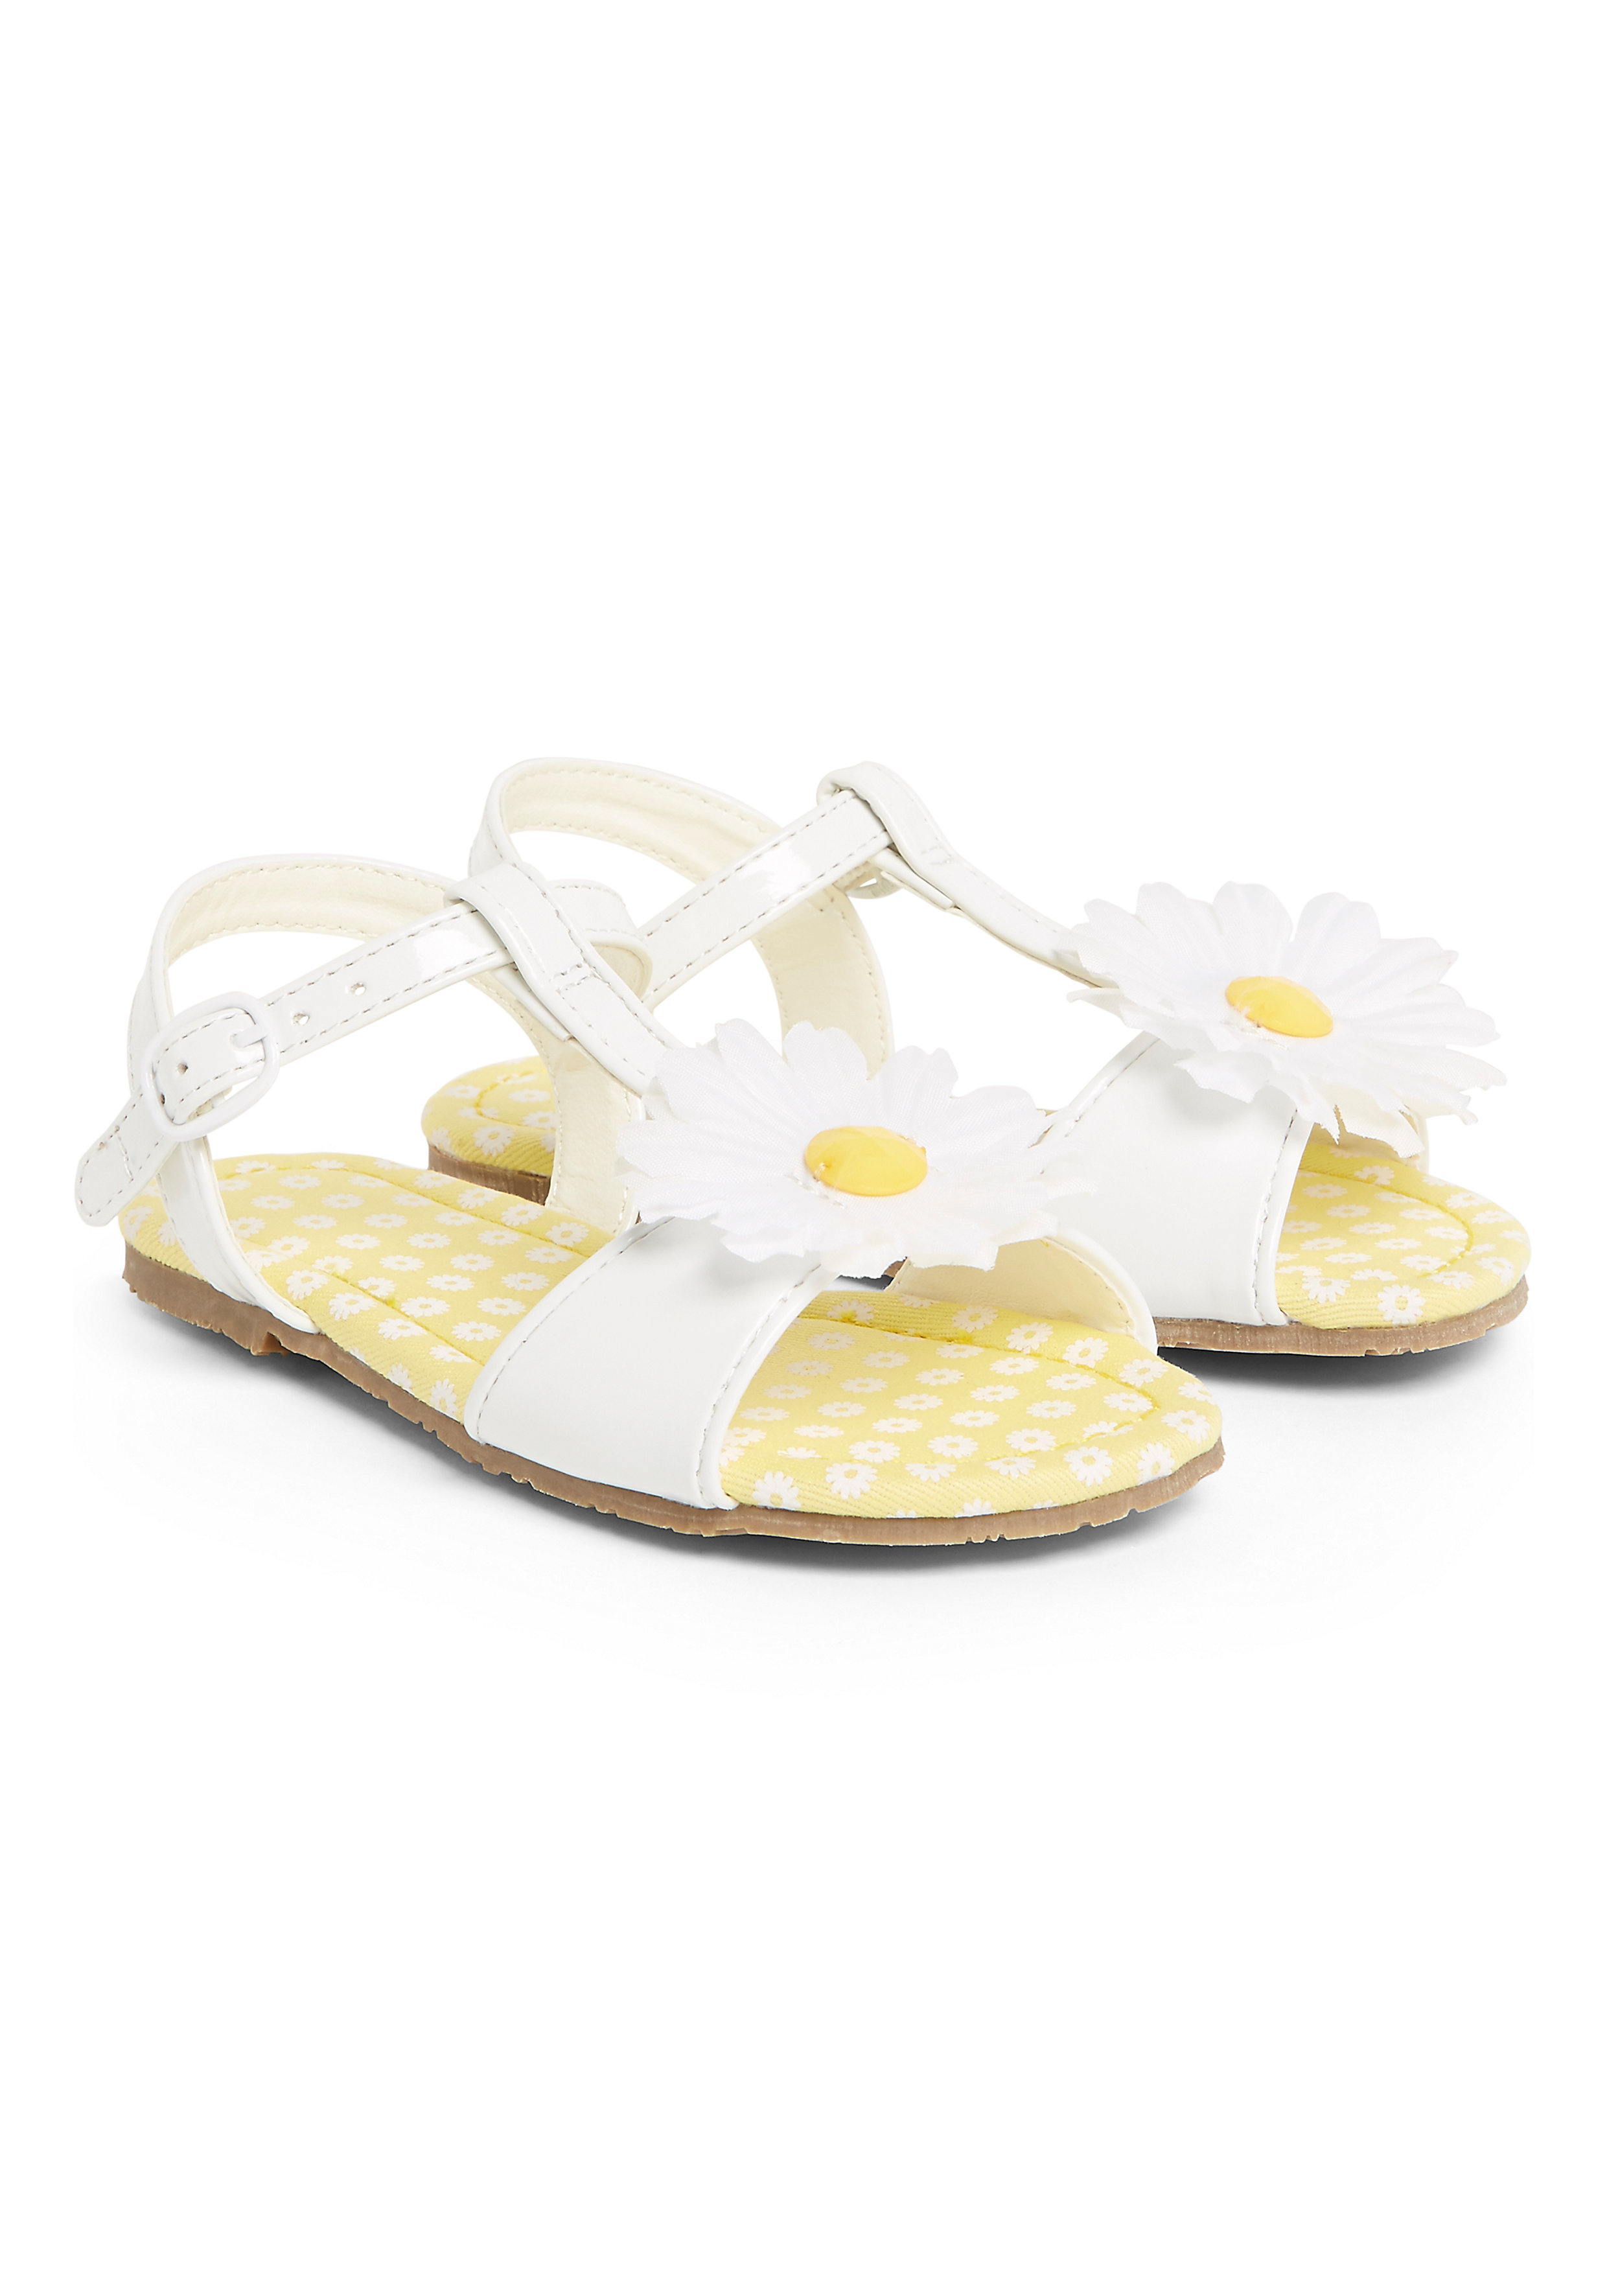 Mothercare   Girls Daisy Sandals - White